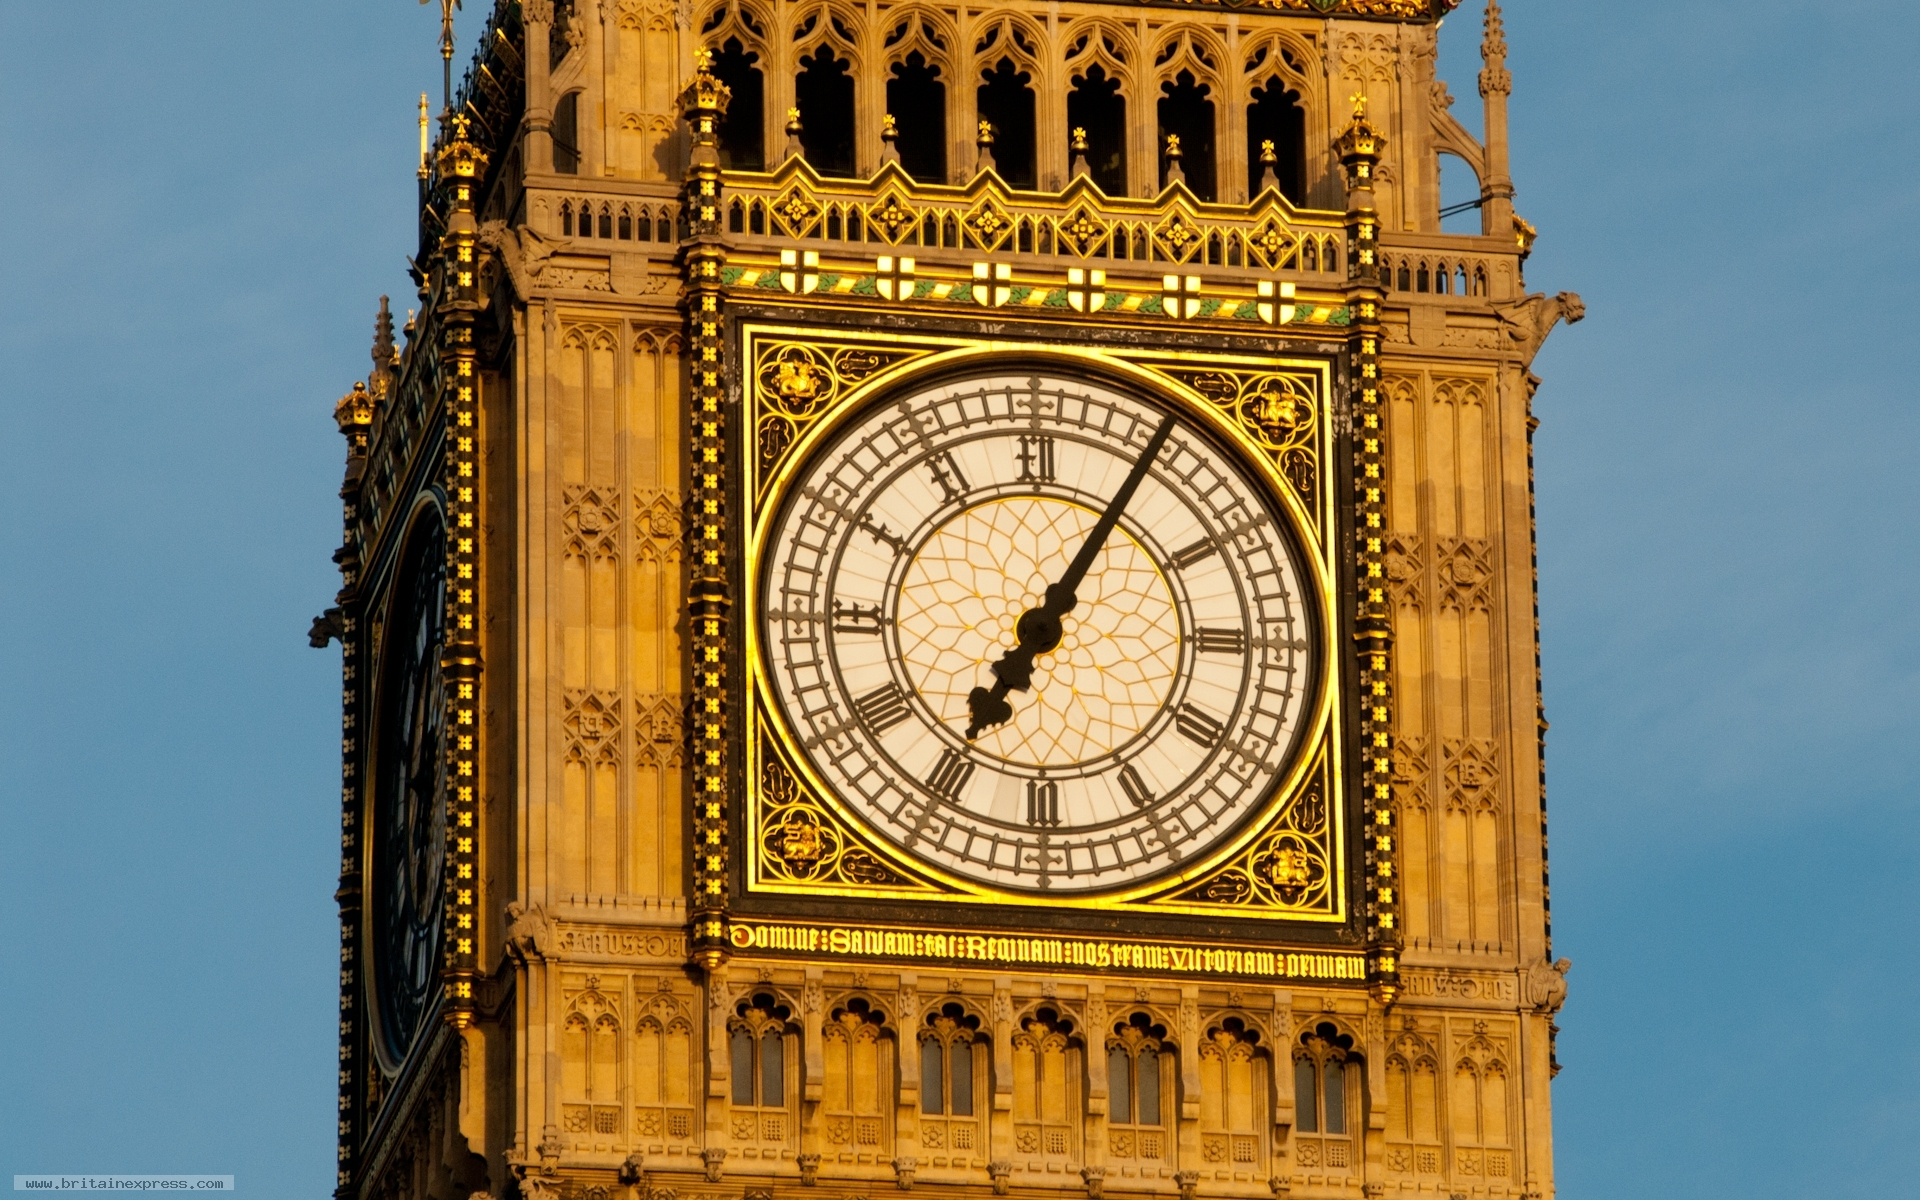 London big ben clock